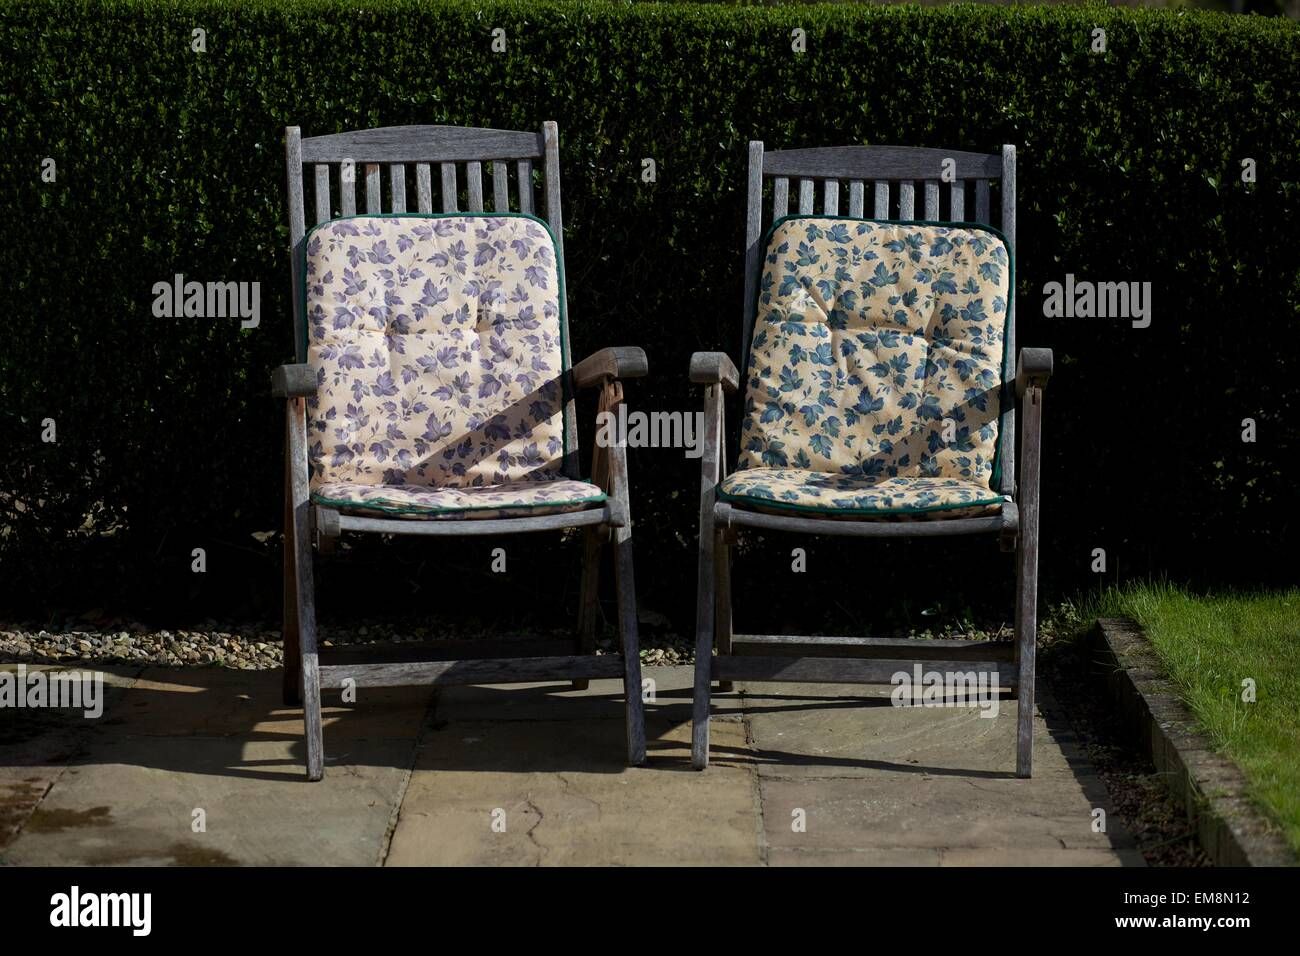 Etonnant Two Deck Chairs With Soft Floral Cushions Against A Hedge In The UK   Stock  Image